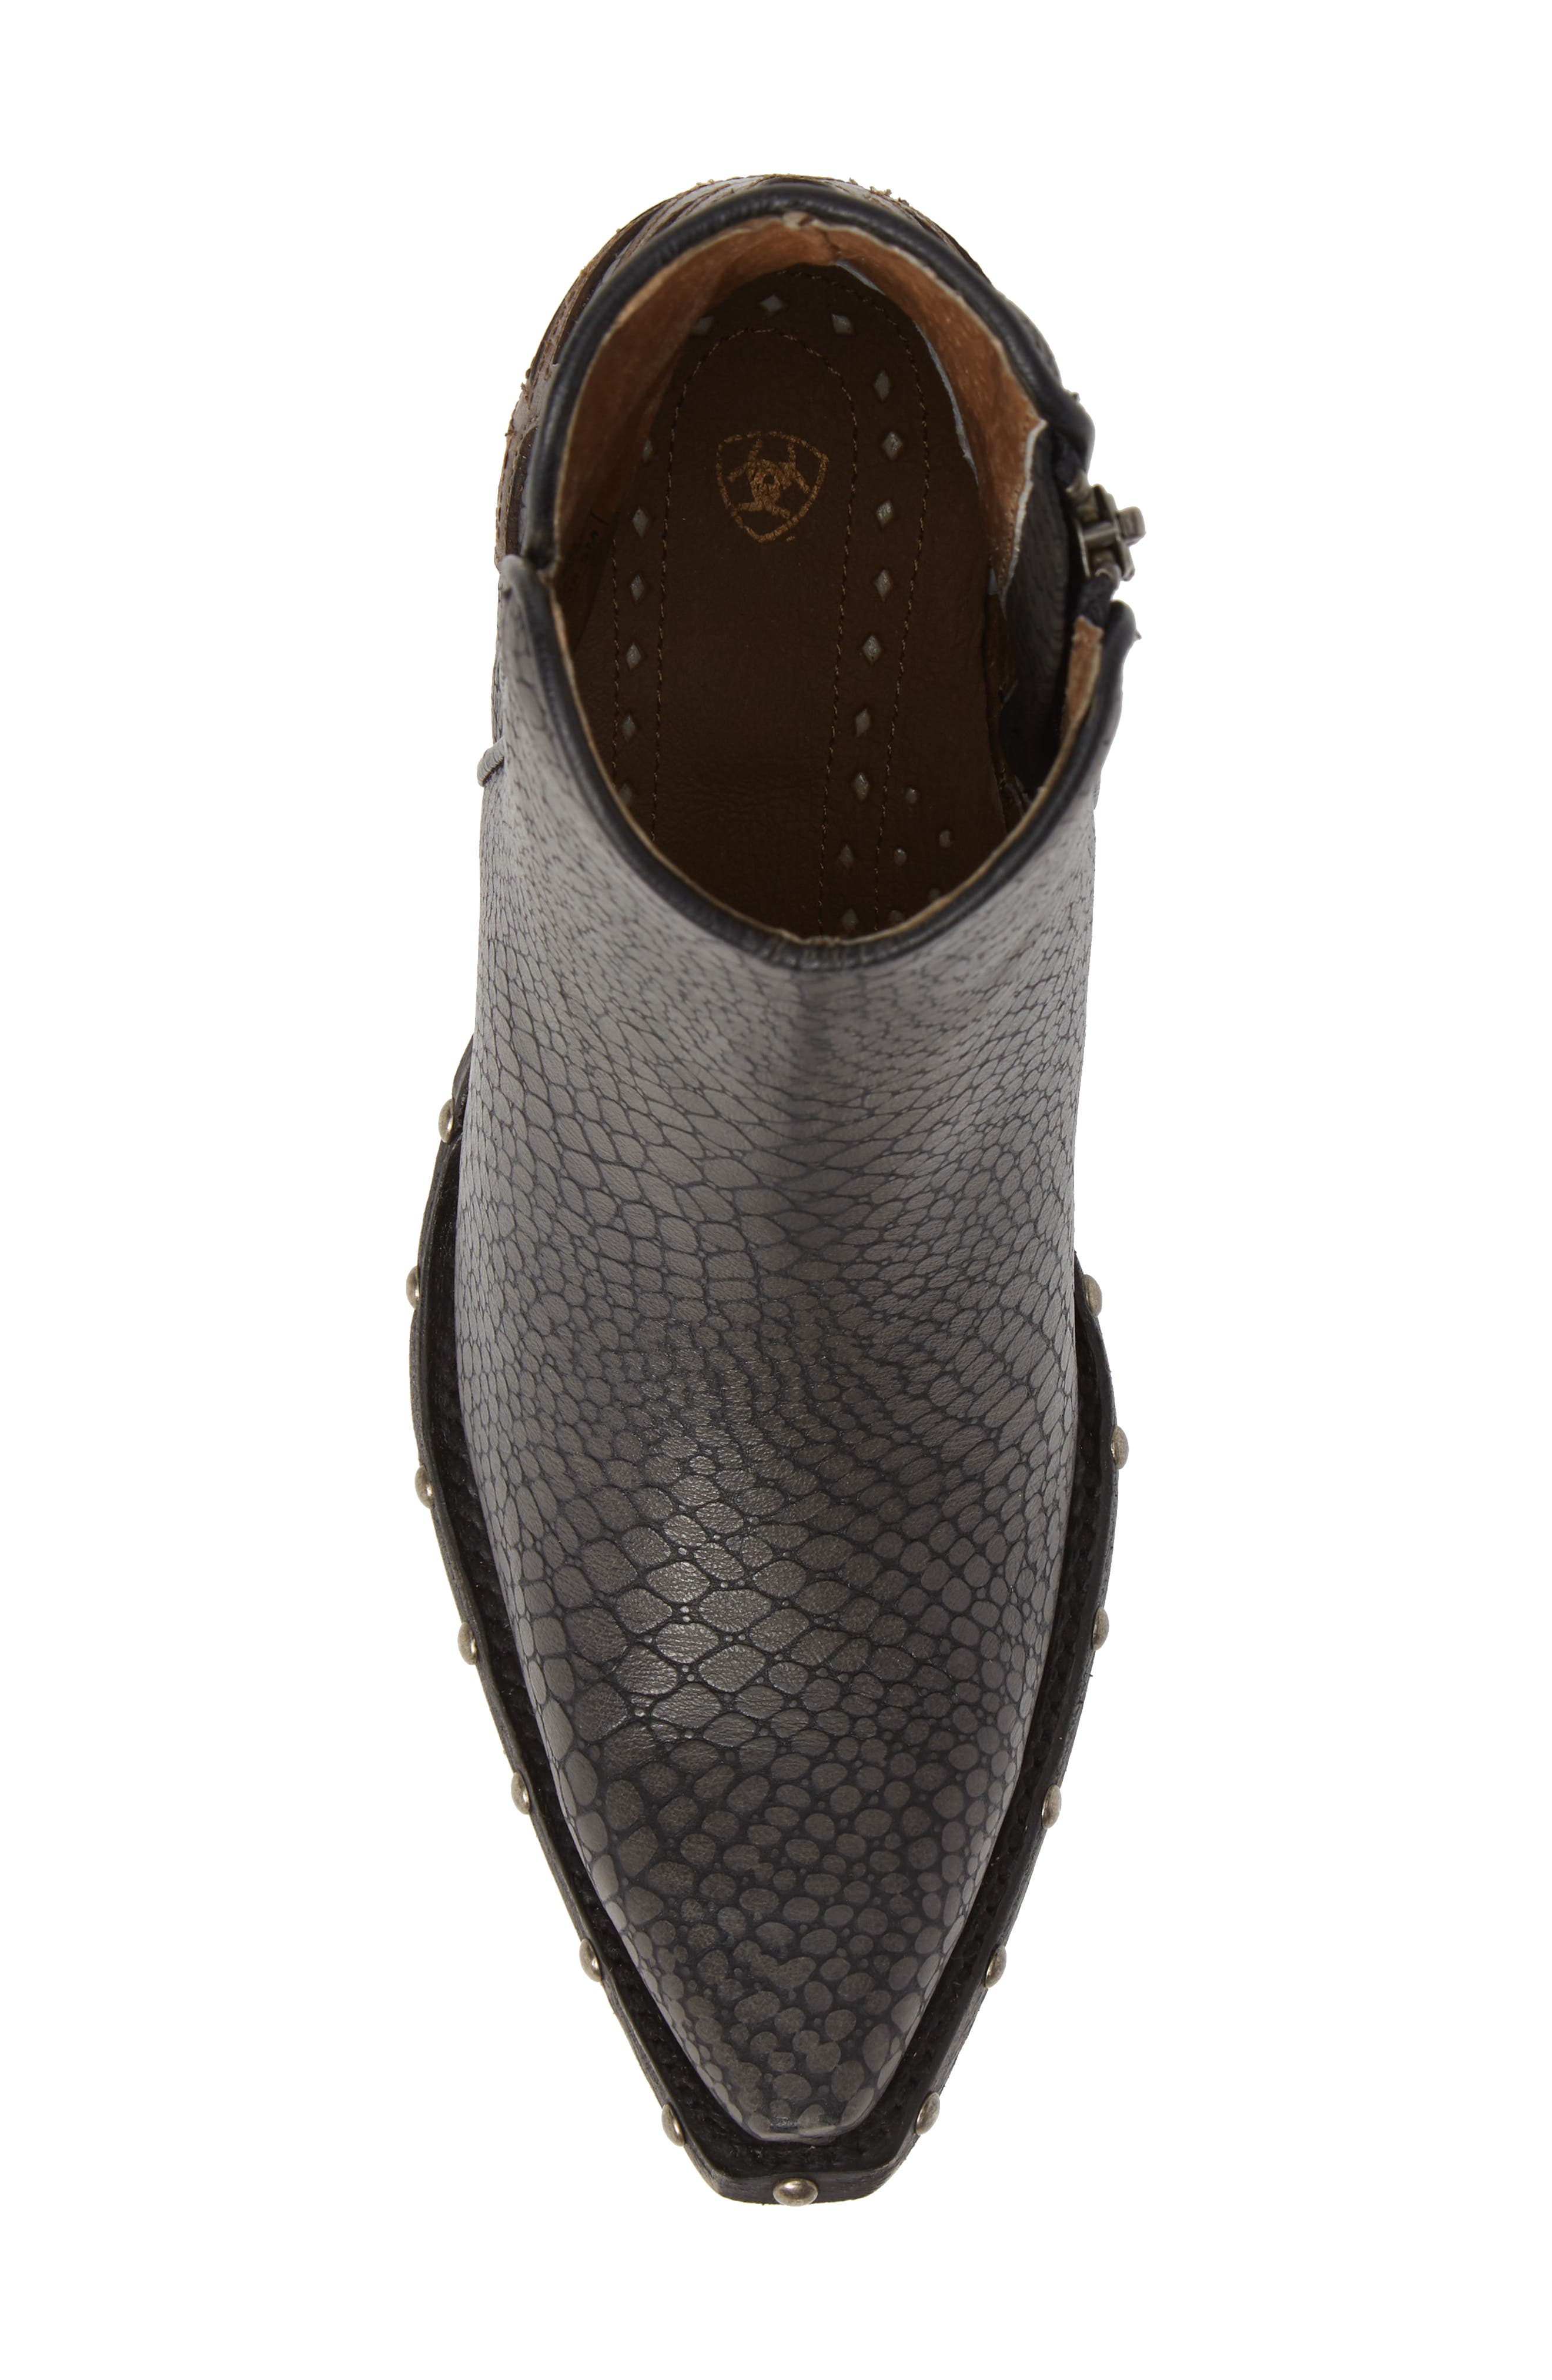 ARIAT, Fenix Western Bootie, Alternate thumbnail 5, color, CHIC GREY CRACKLED TAN LEATHER